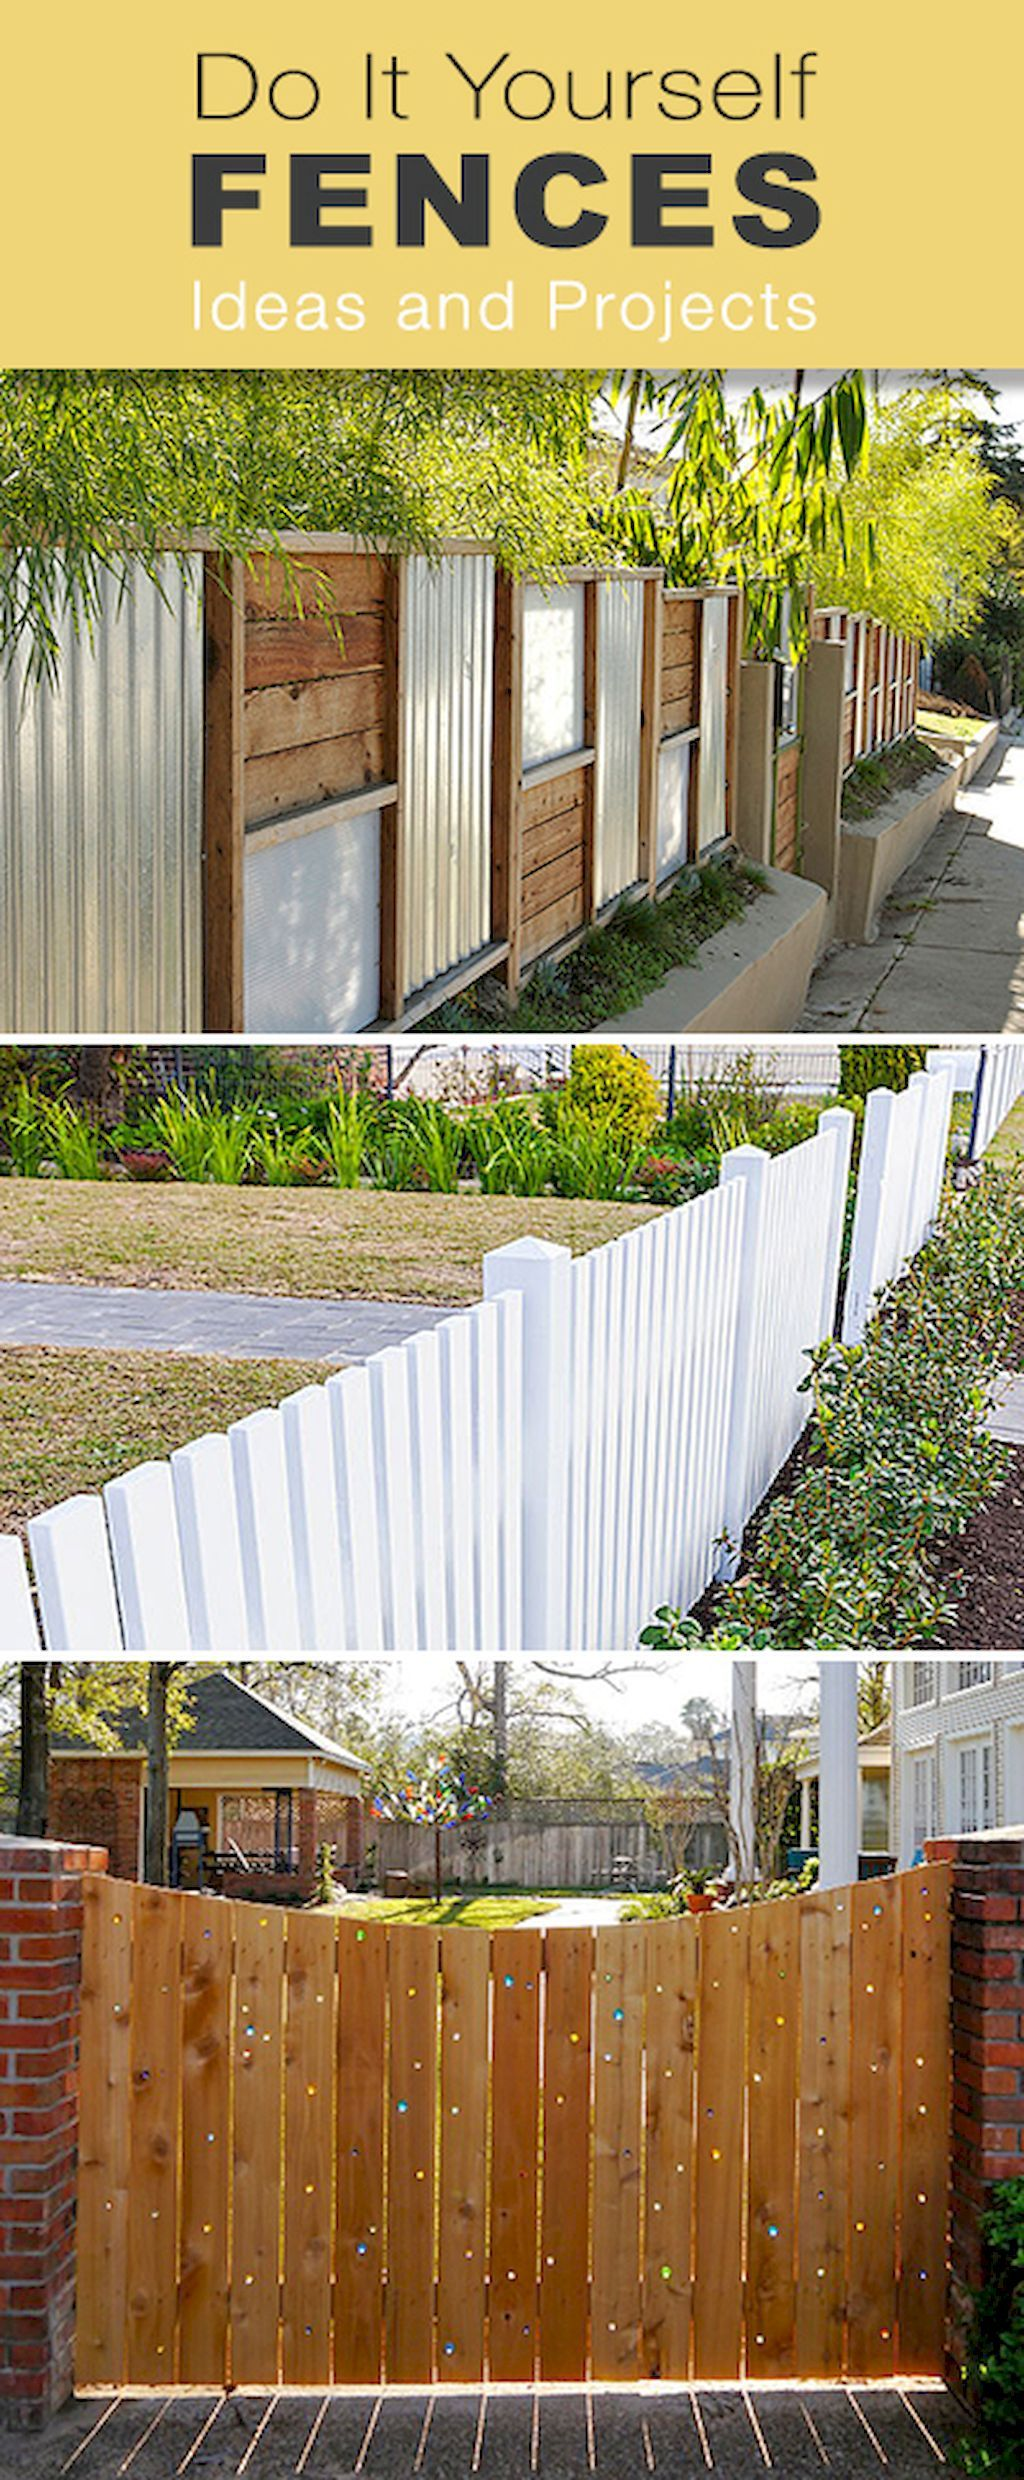 78 creative privacy fence ideas for gardens and backyards